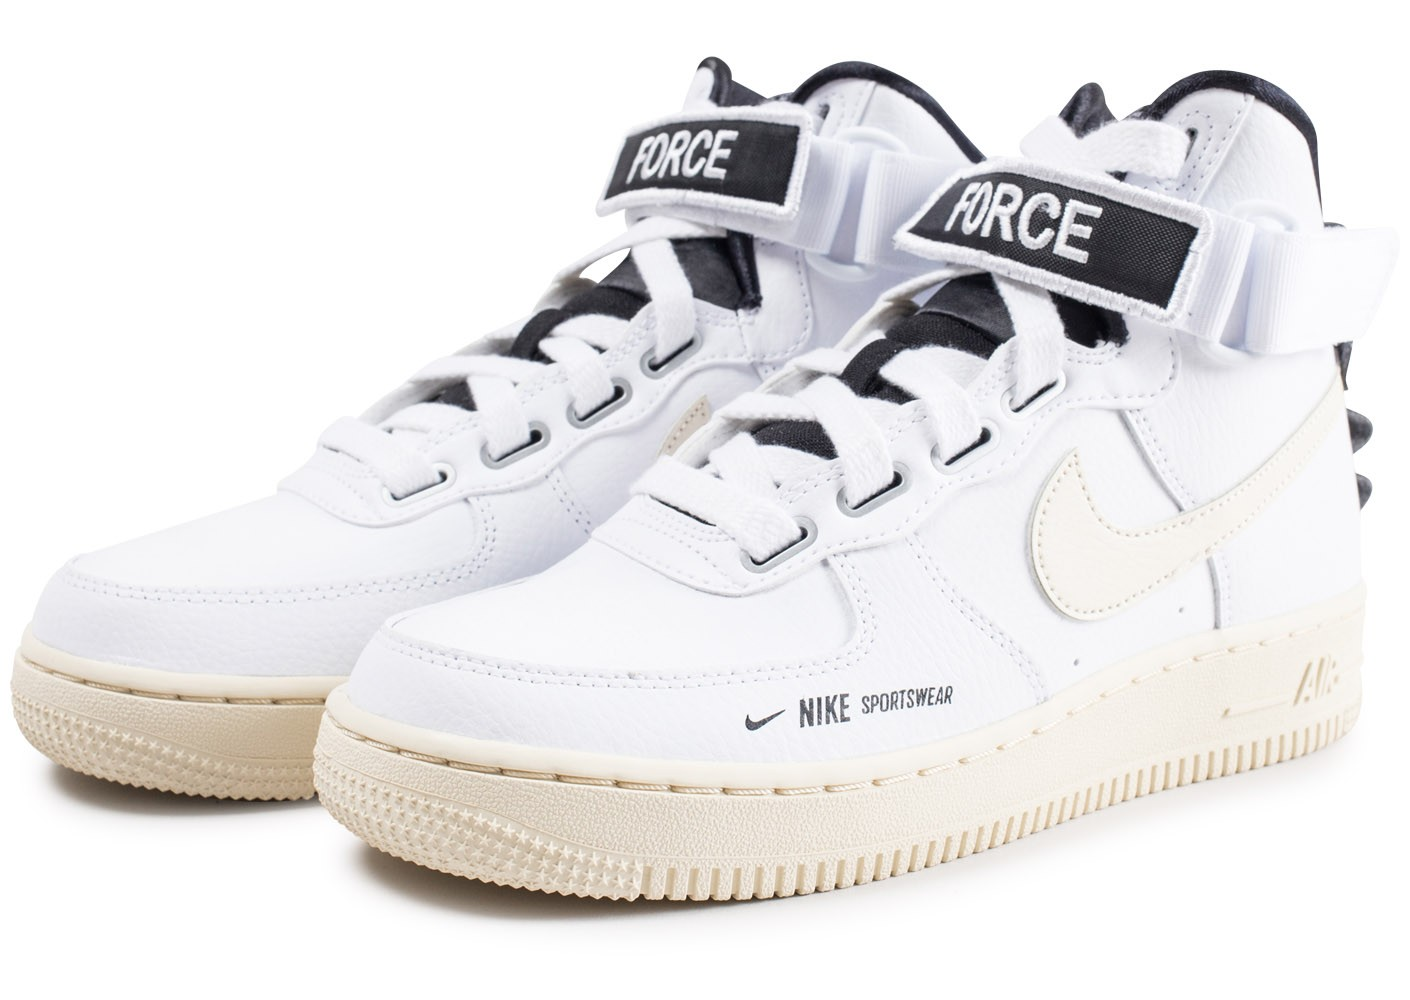 la moitié ad450 af1b4 Nike Air Force 1 High Utilty blanche femme - Chaussures ...